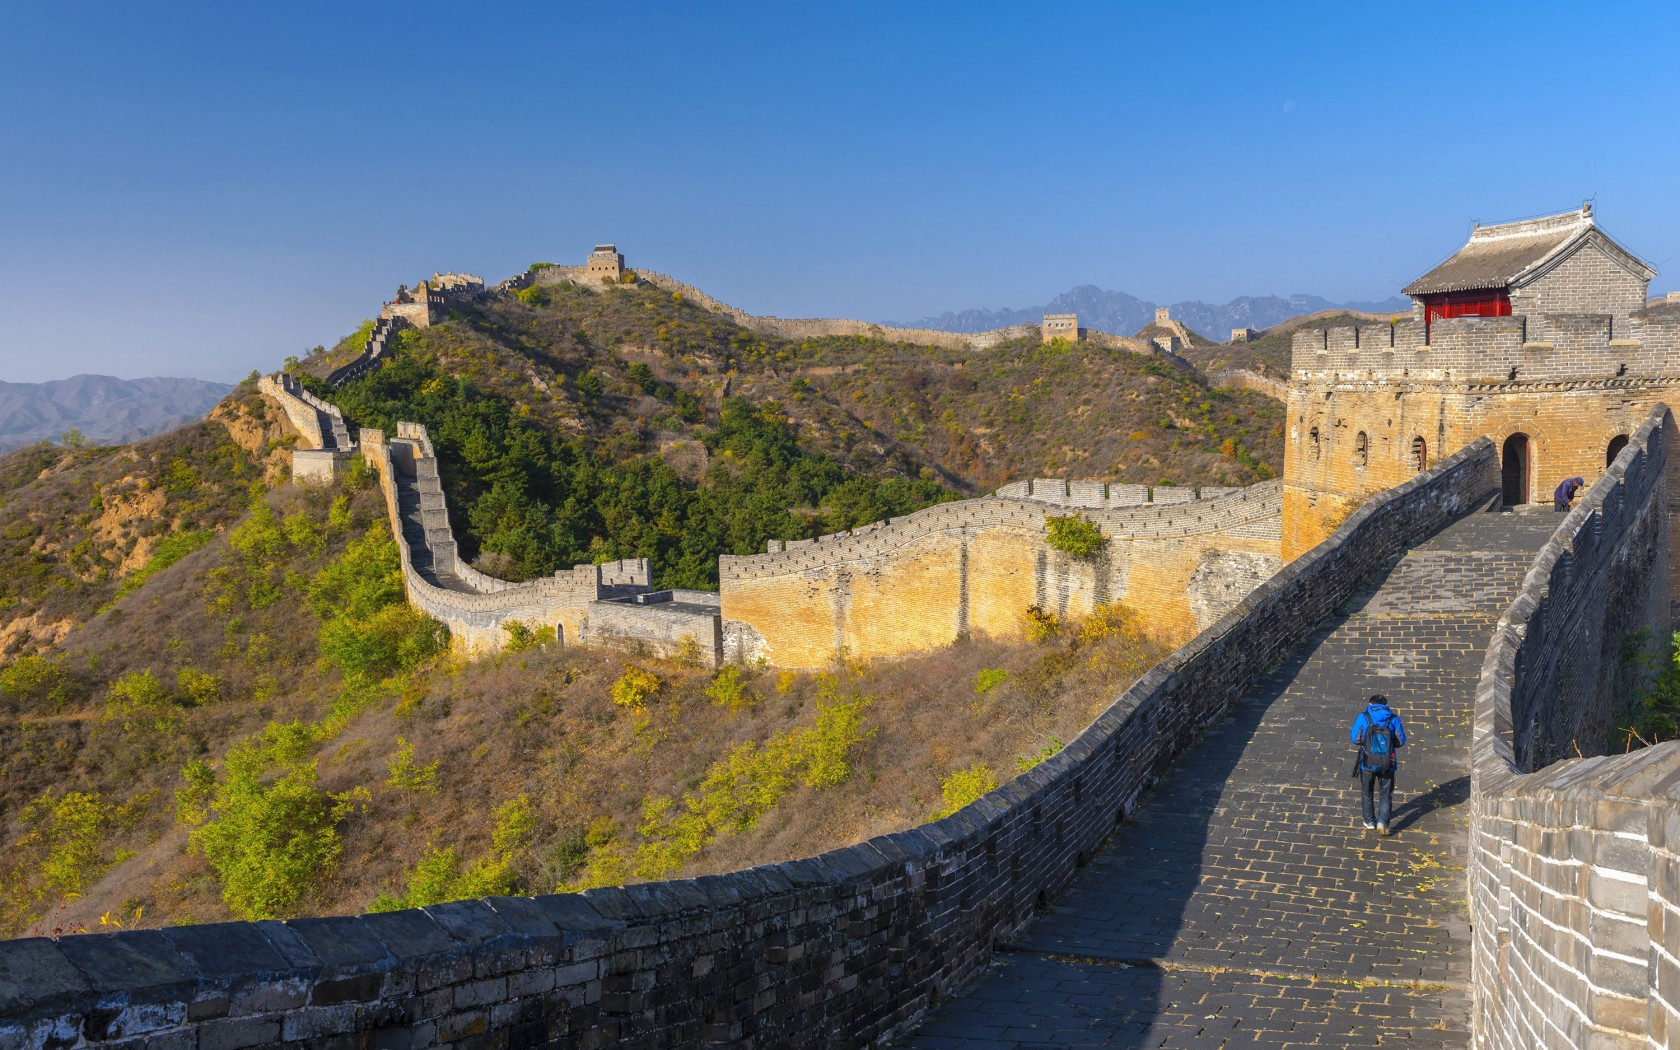 15Overs-Great-Wall-of-China-rexfeatures_3976323a-1680x1050